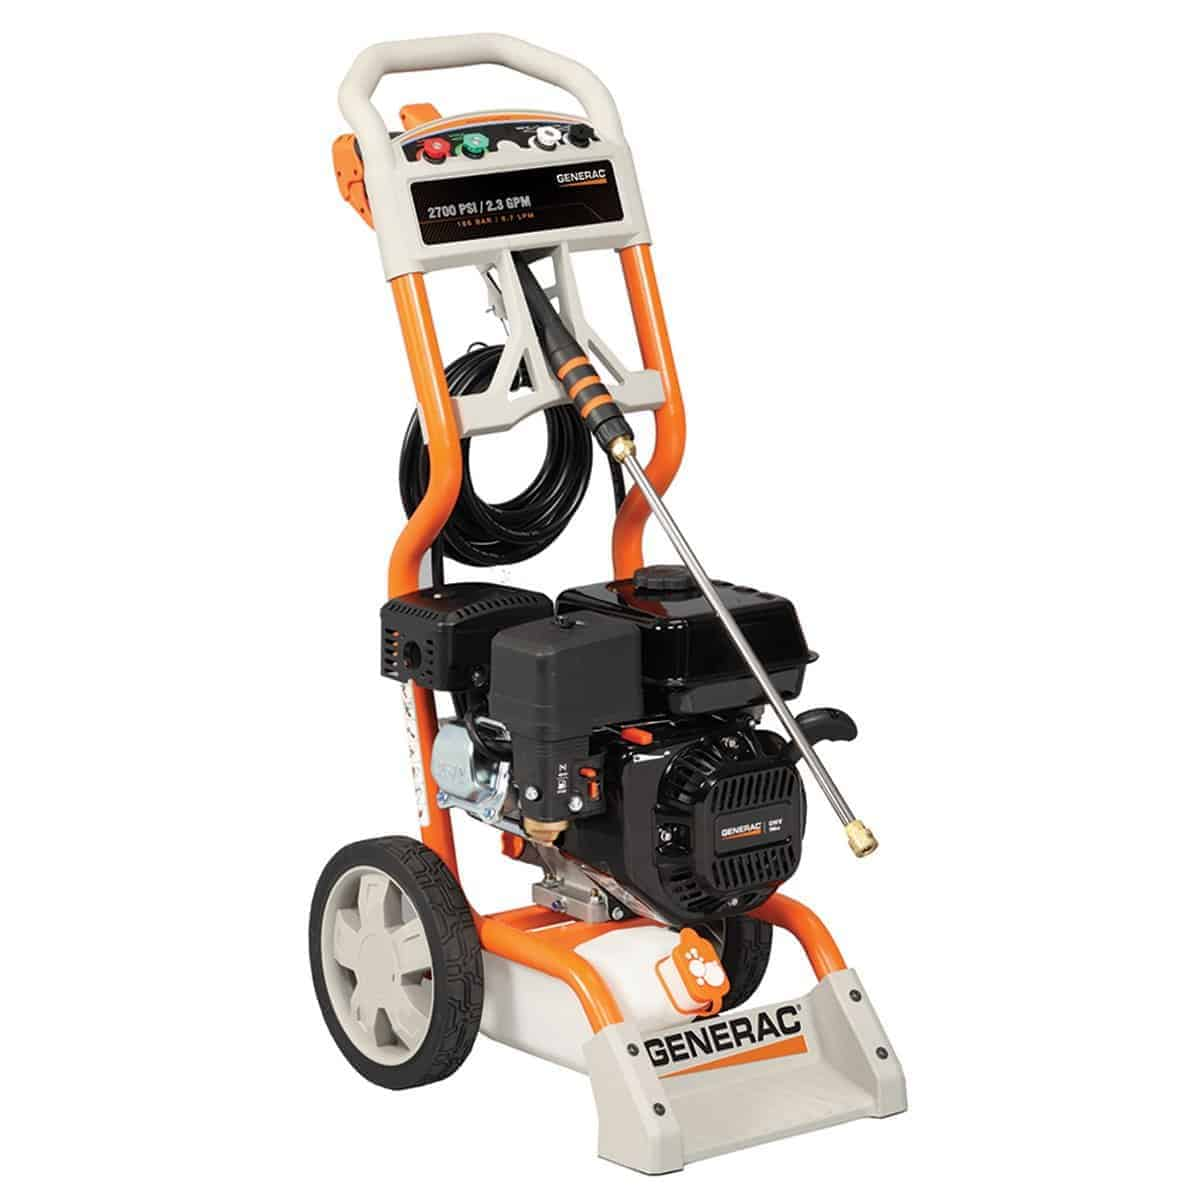 Generac 6023 2,700 PSI 2.3 GPM 196cc OHV Gas Powered Residential Pressure Washer review